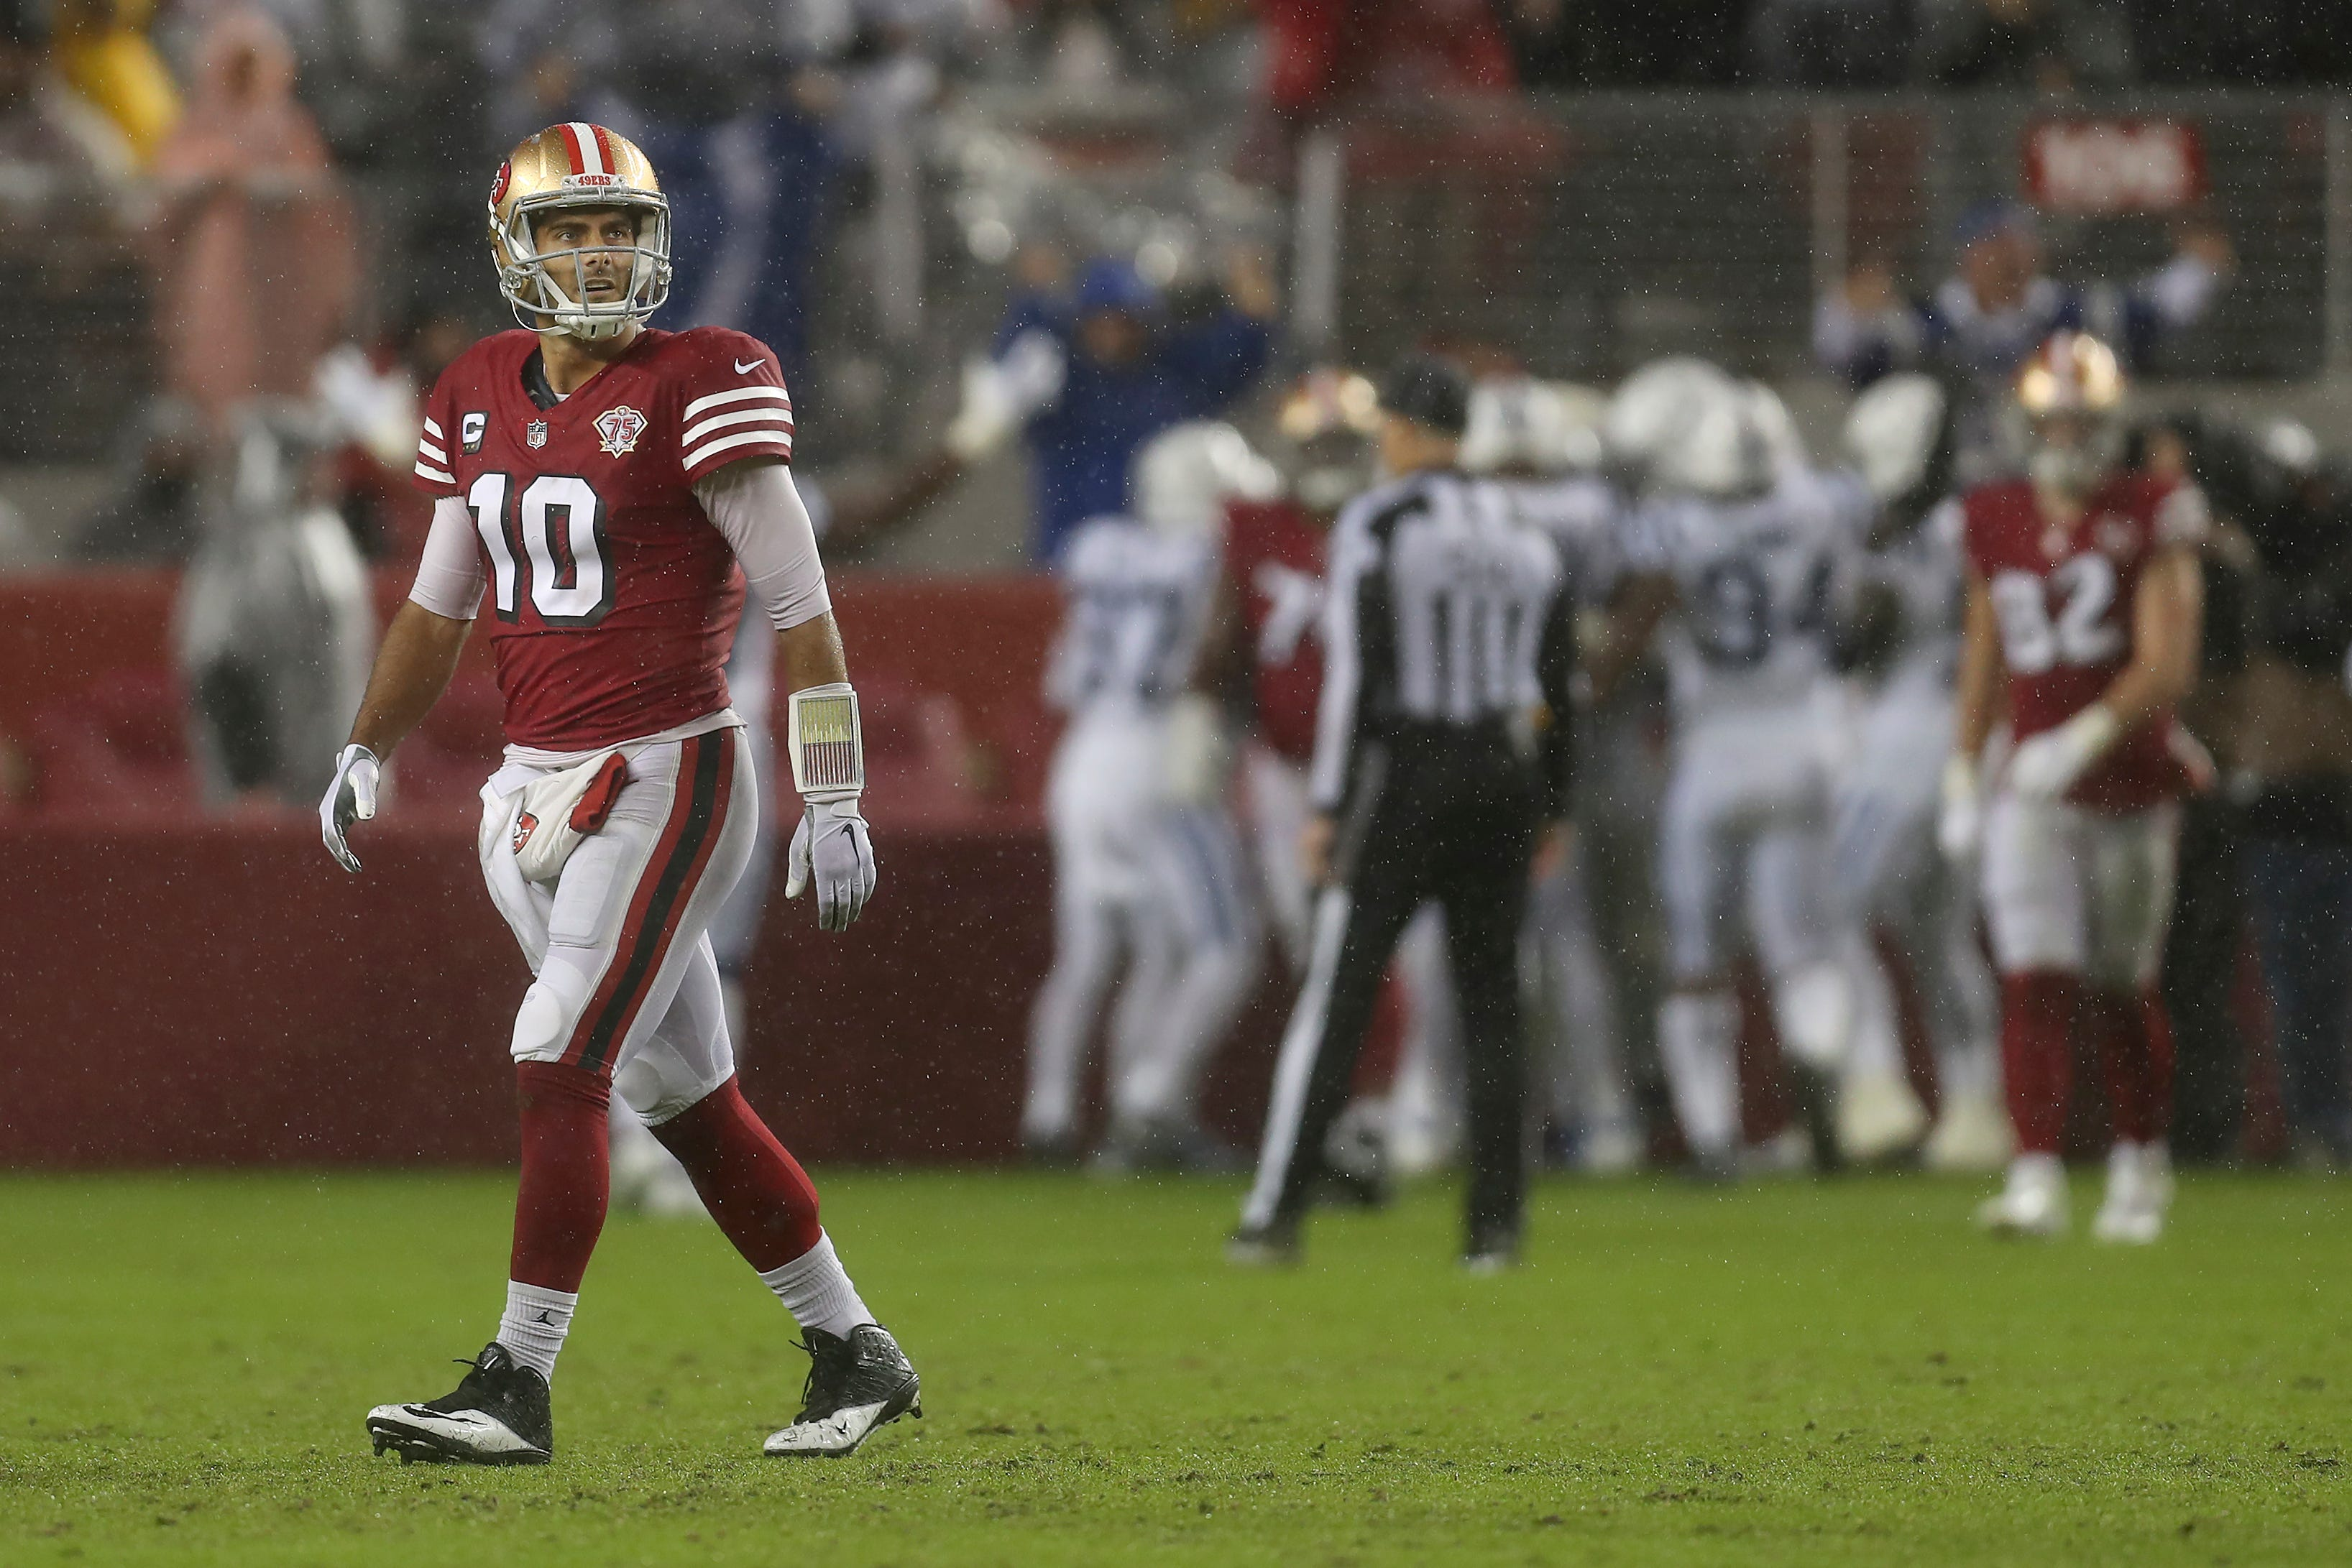 Sloppy 49ers drop 4th straight, losing 30-18 to Colts